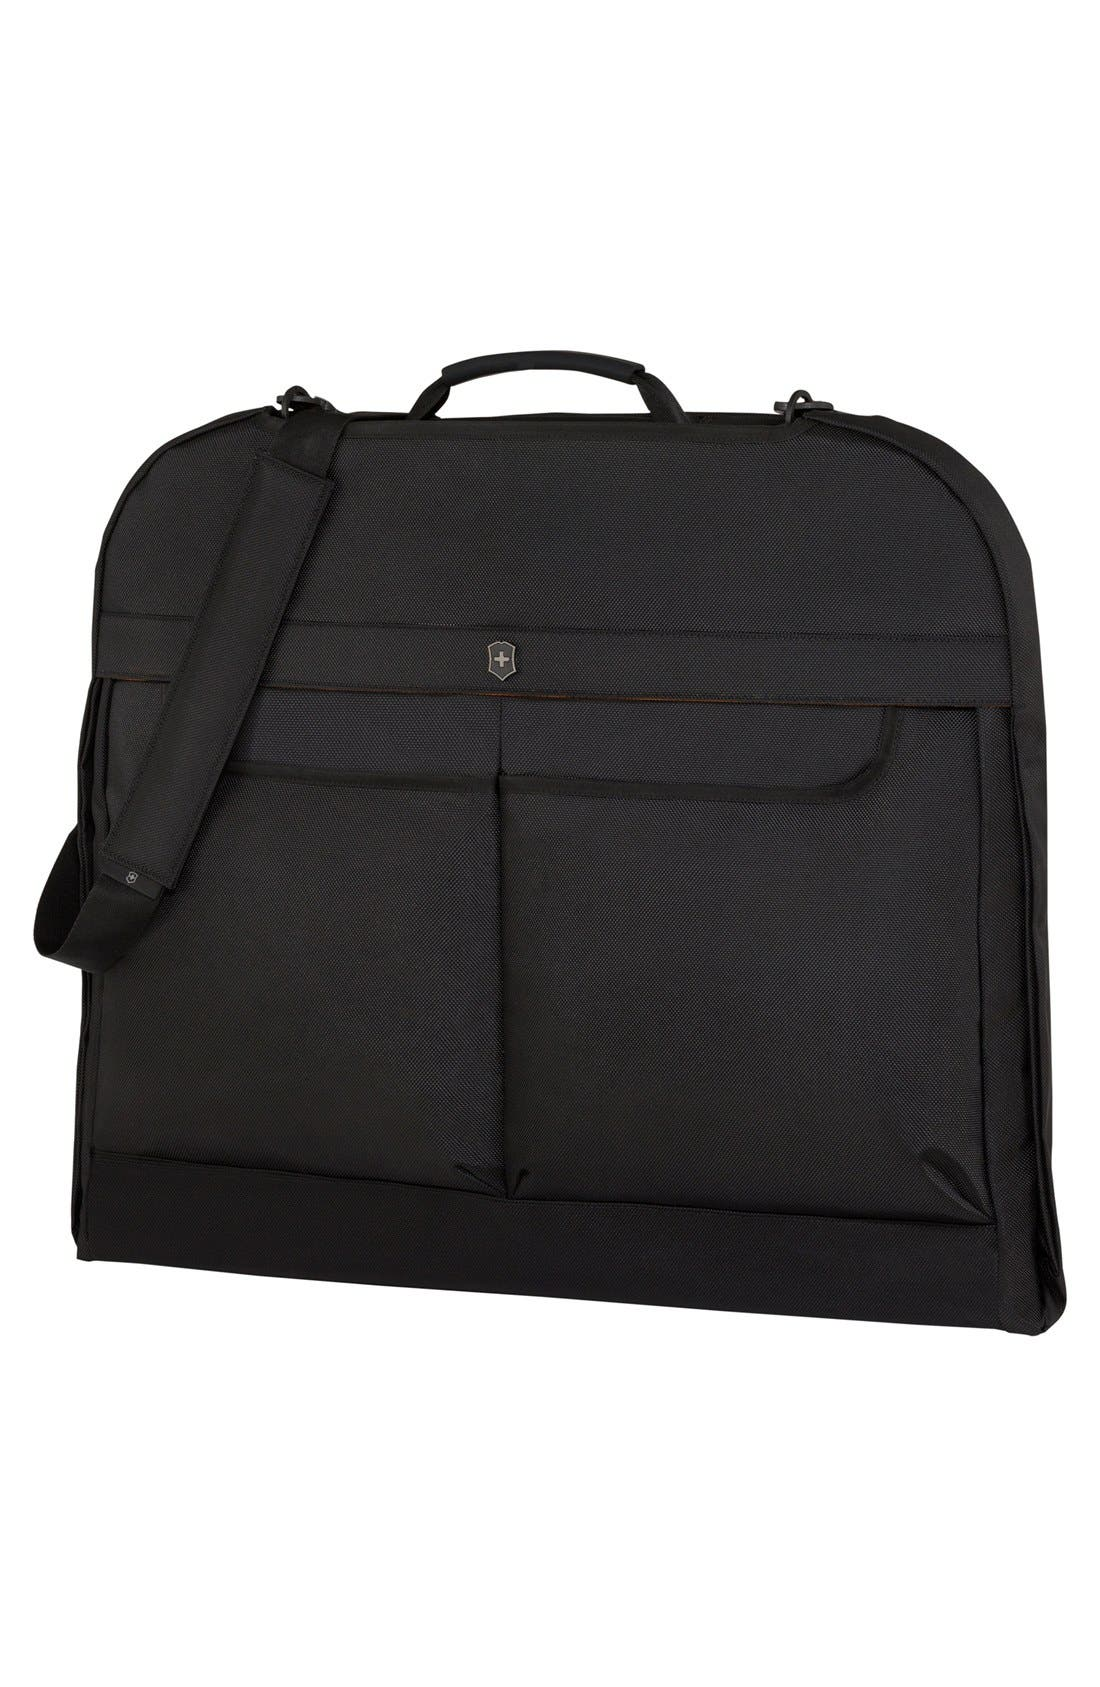 VICTORINOX SWISS ARMY<SUP>®</SUP> WT 5.0 Deluxe Garment Bag